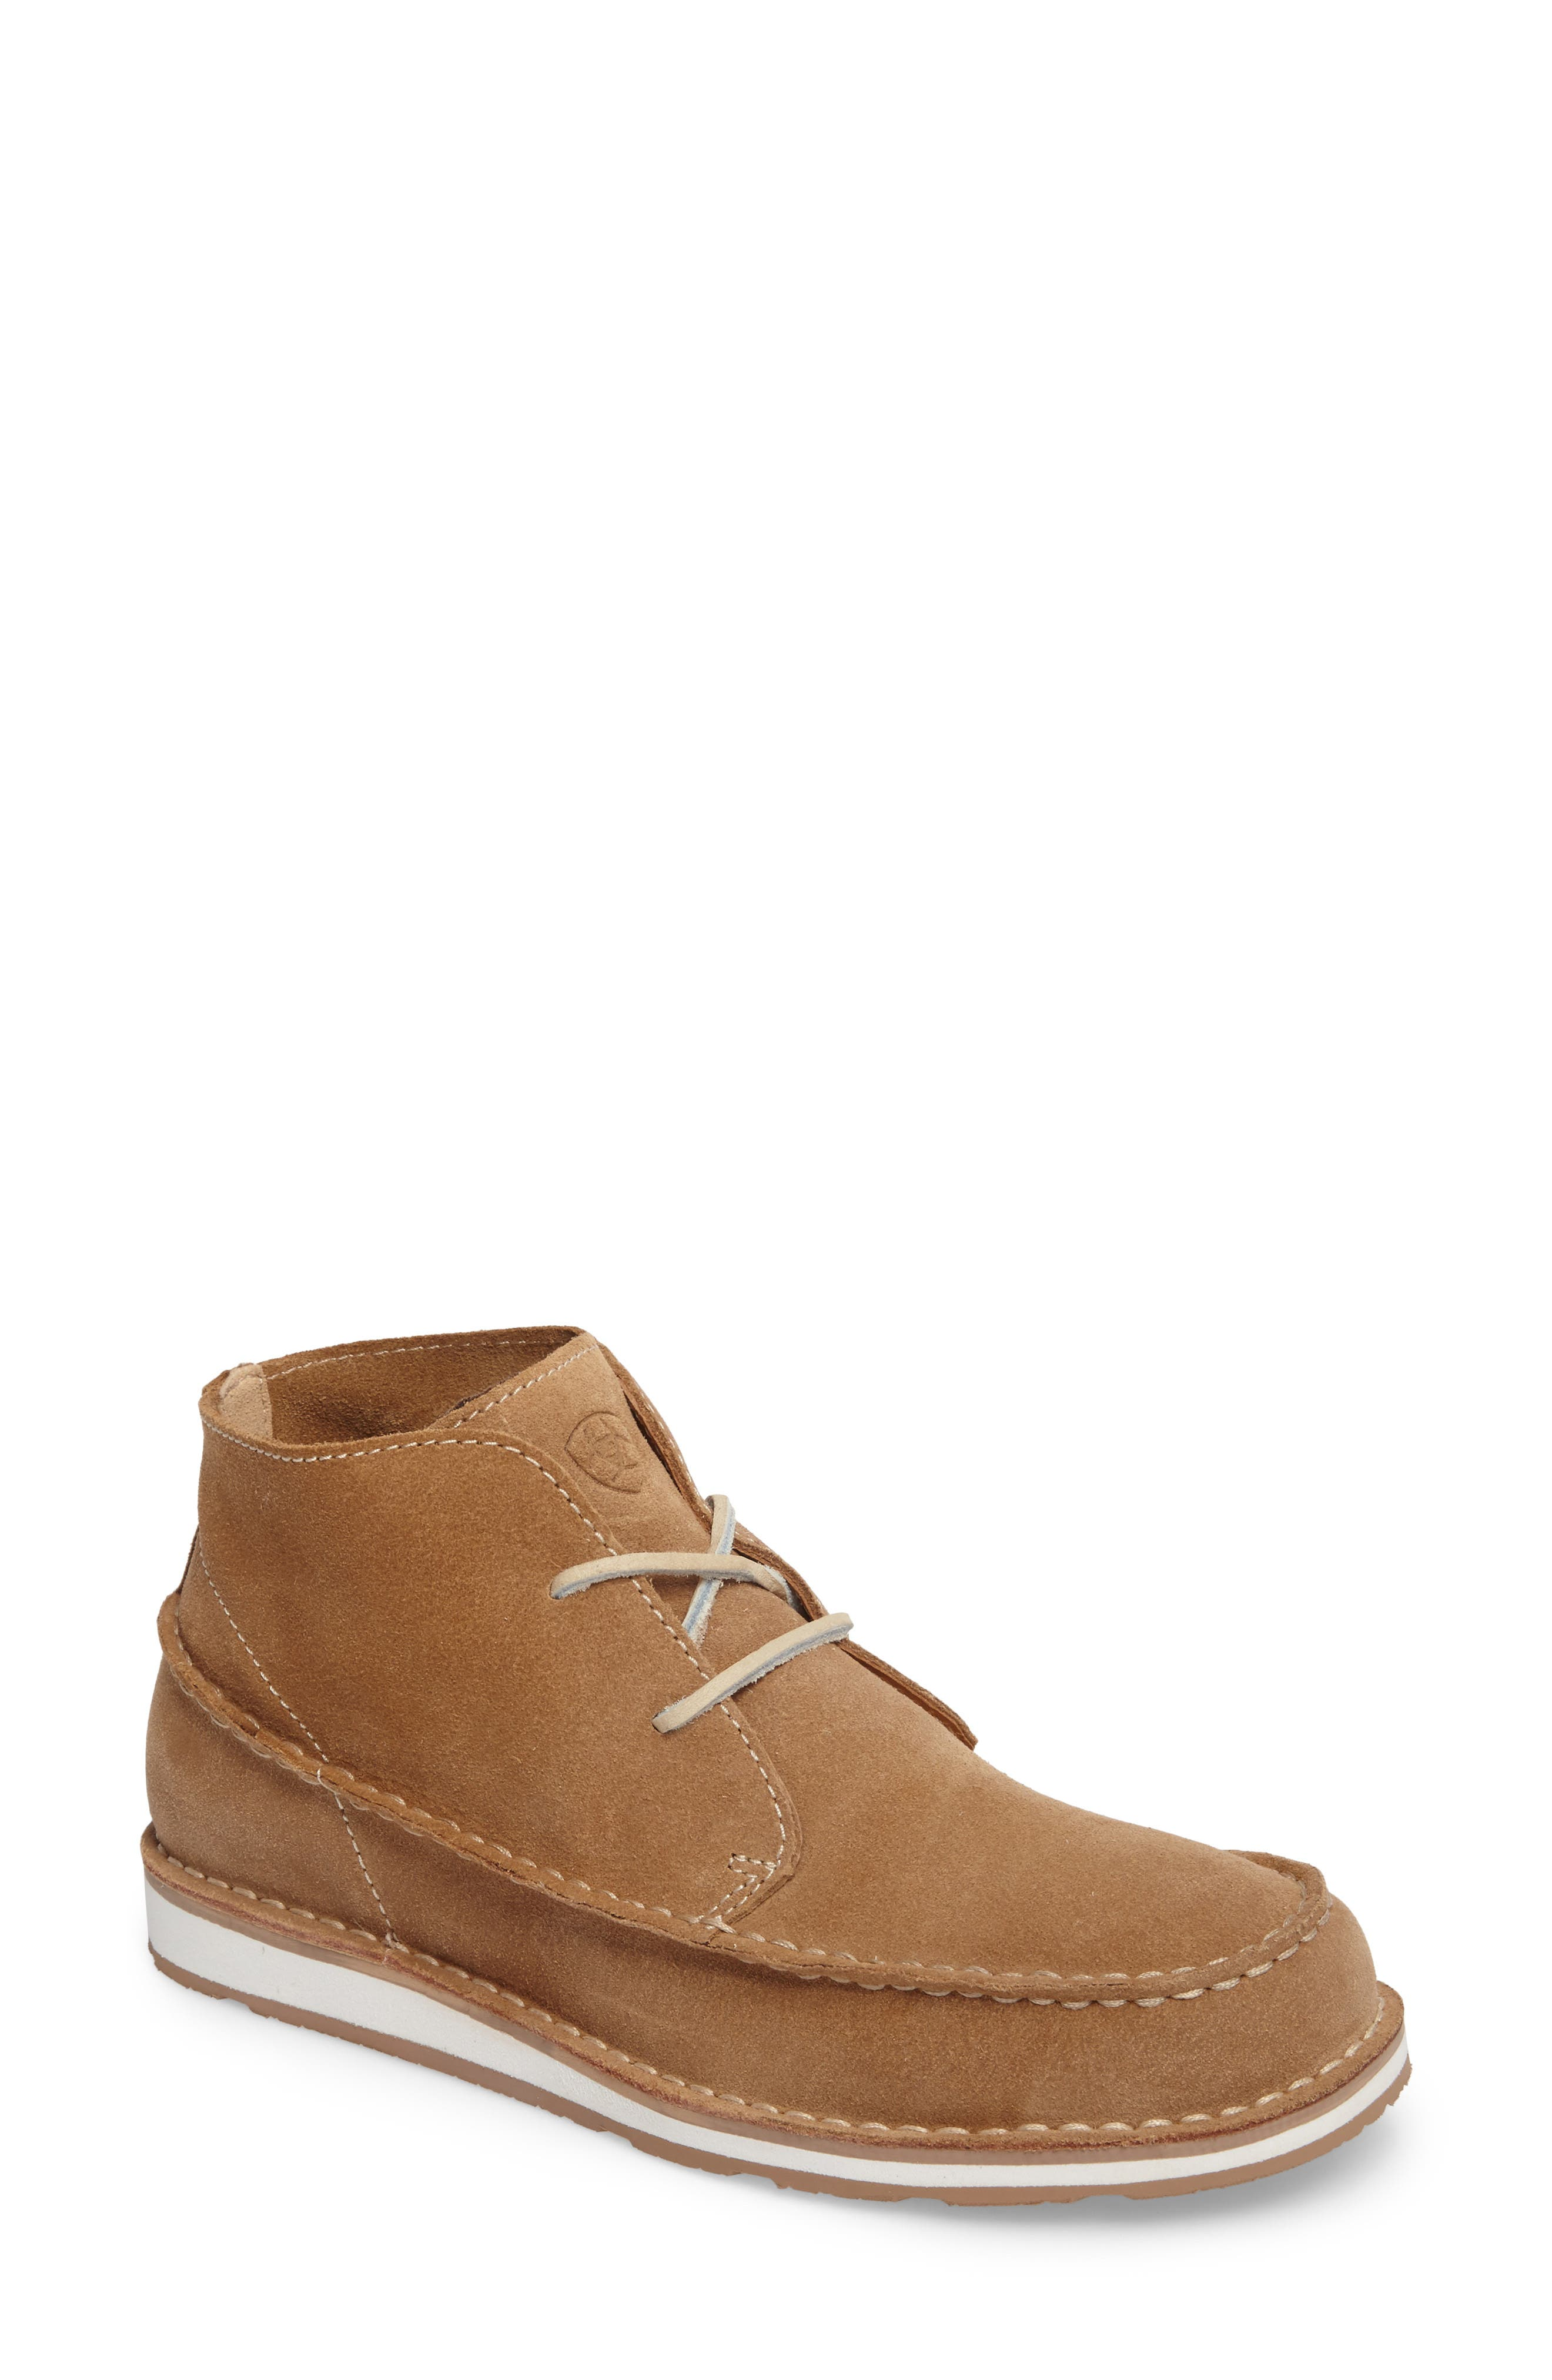 Cruiser Chukka Boot,                             Main thumbnail 1, color,                             Lace Dirty Taupe Suede